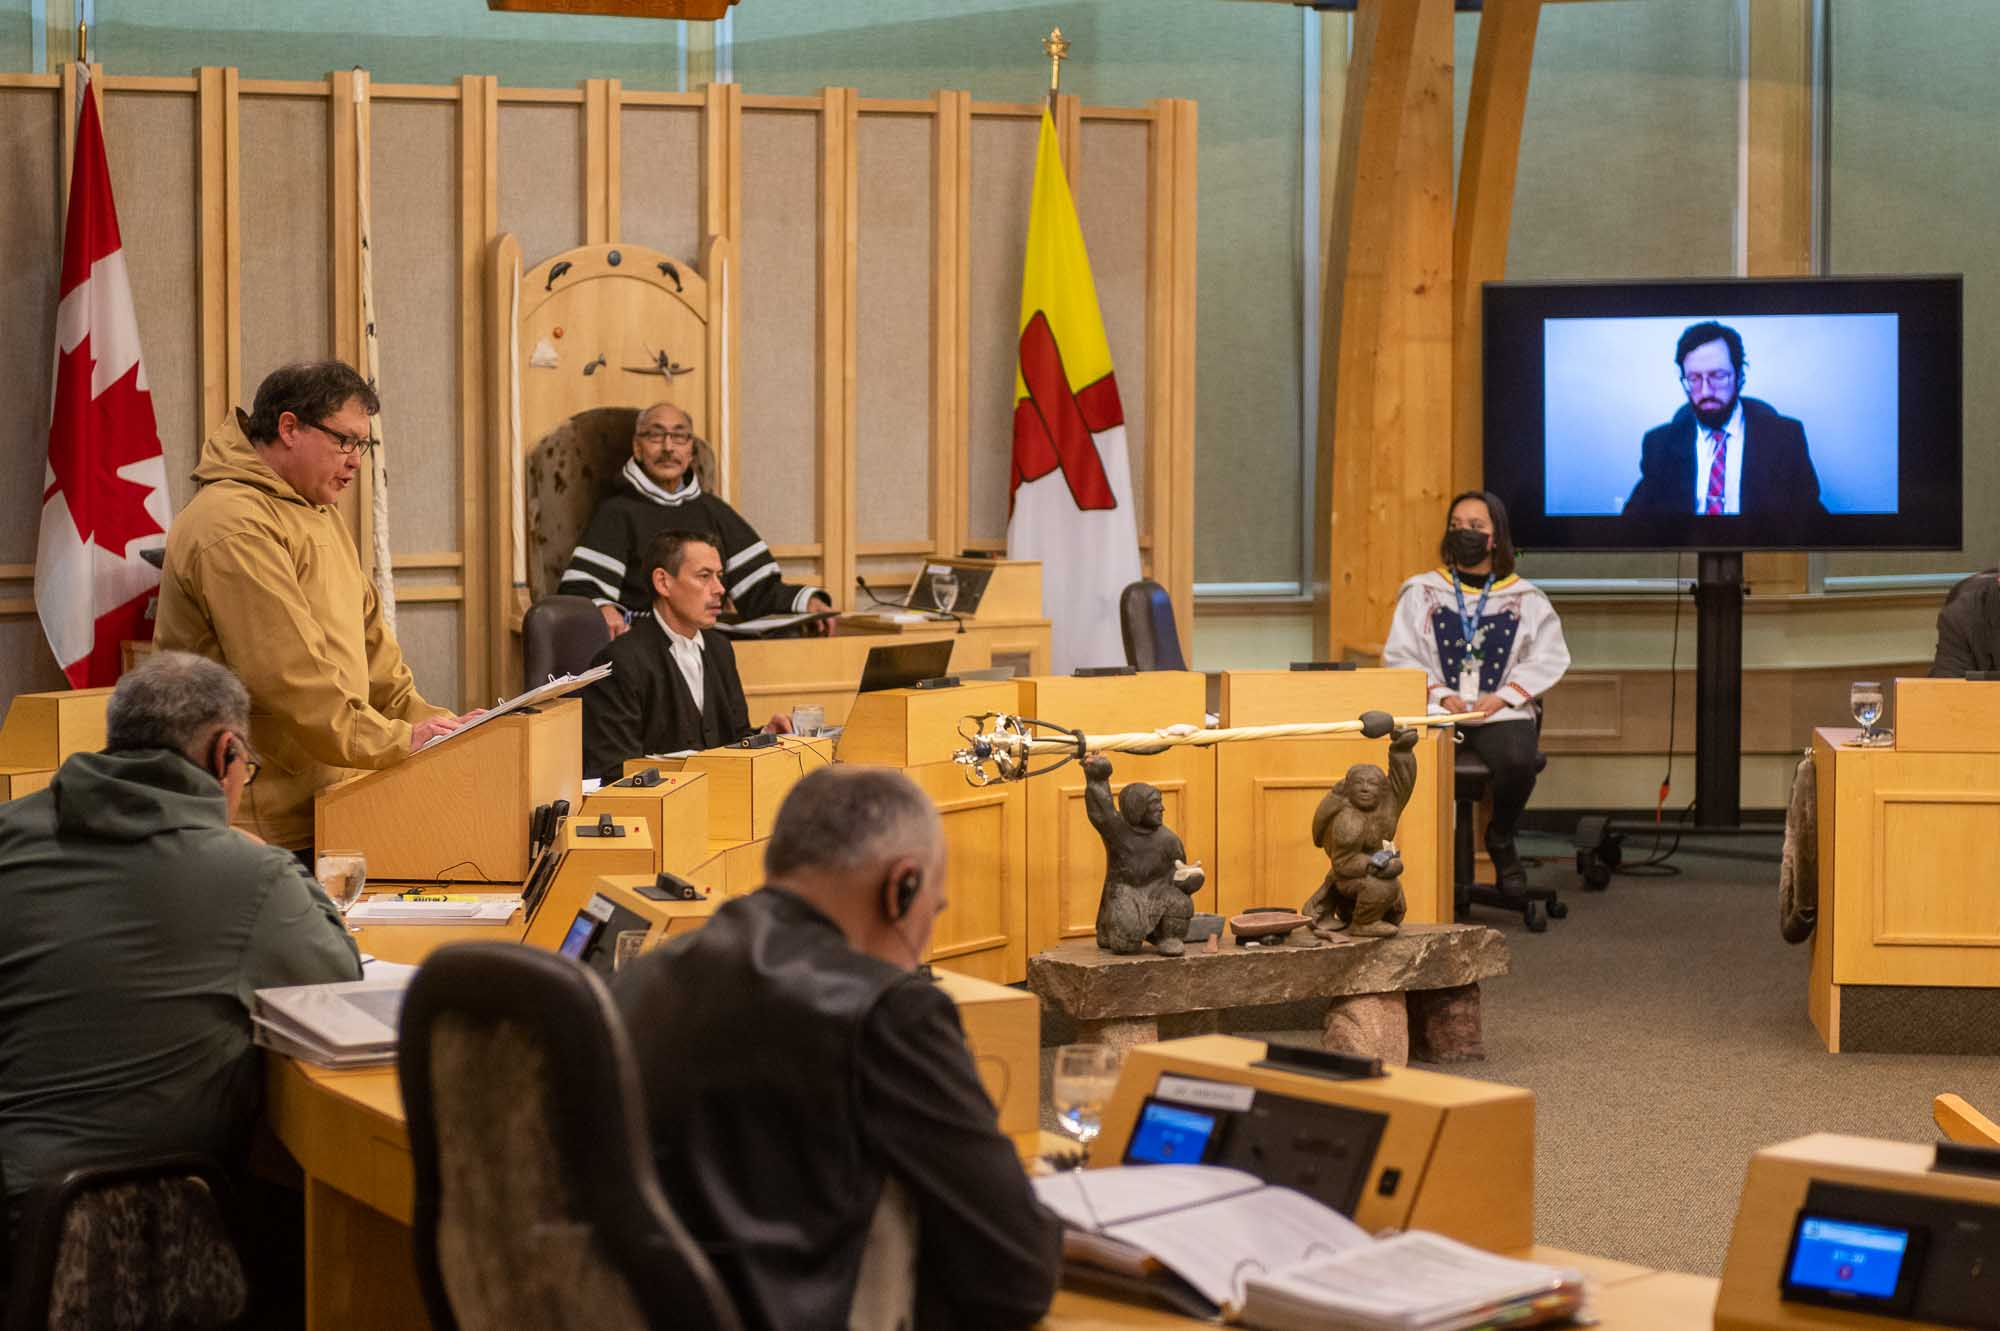 The Government of Nunavut is in good financial shape despite the effects of the COVID-19 pandemic, says Finance Minister George Hickes, who presented the territorial government's budget for 2021-22 Tuesday afternoon in the legislature. Hickes forecast almost $2.4 billion in revenue for the coming fiscal year. (Photo by Dustin Patar)